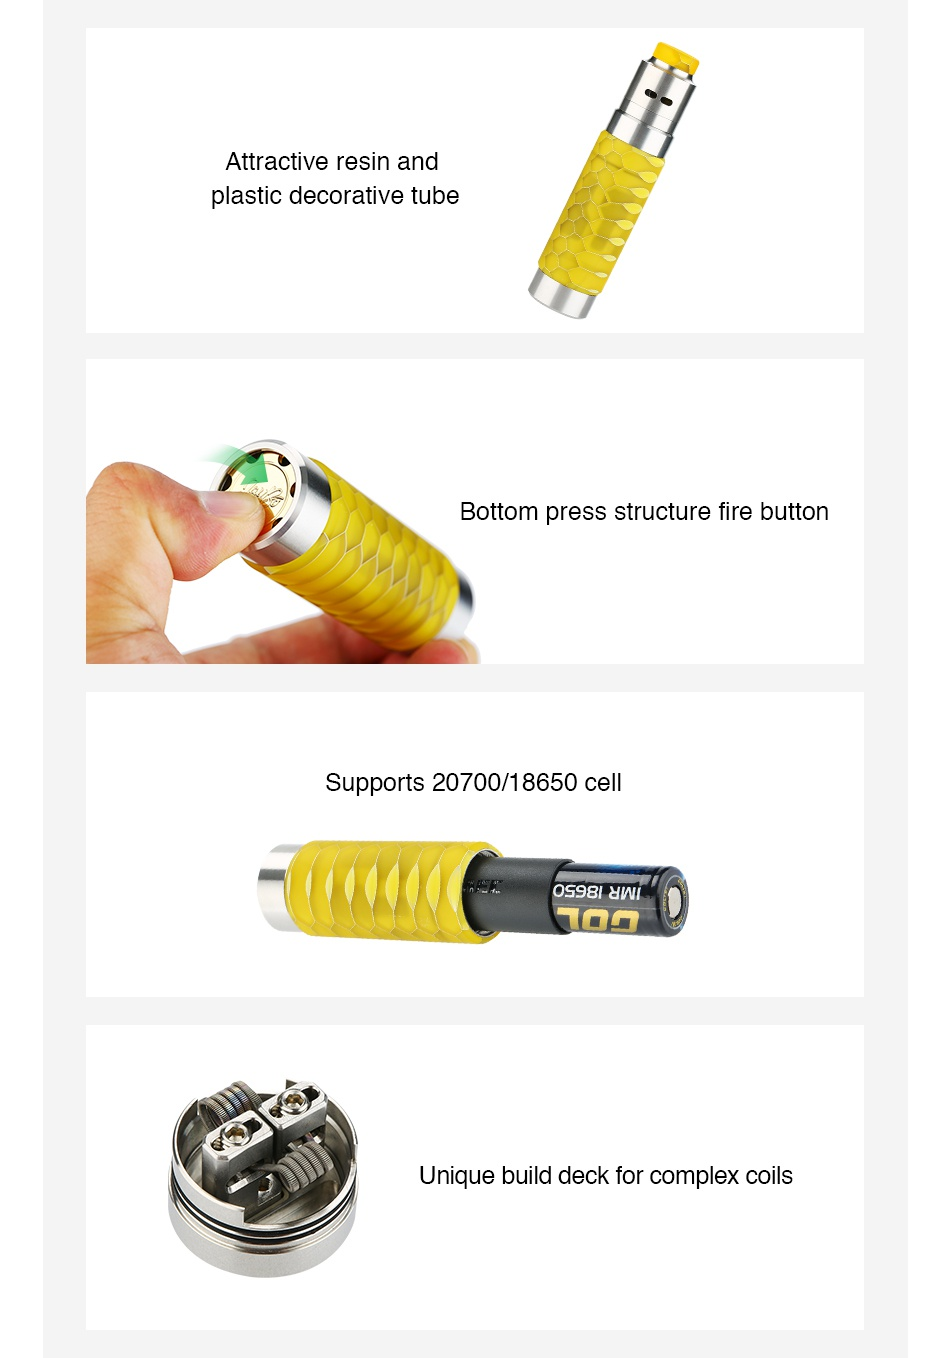 WISMEC Reuleaux RX Machina 20700 Mech MOD with Guillotine RDA Kit Attractive resin and plastic decorative tube Bottom press structure fire button Supports 20700 18650 C OS981 dWI Unique build deck for complex coils